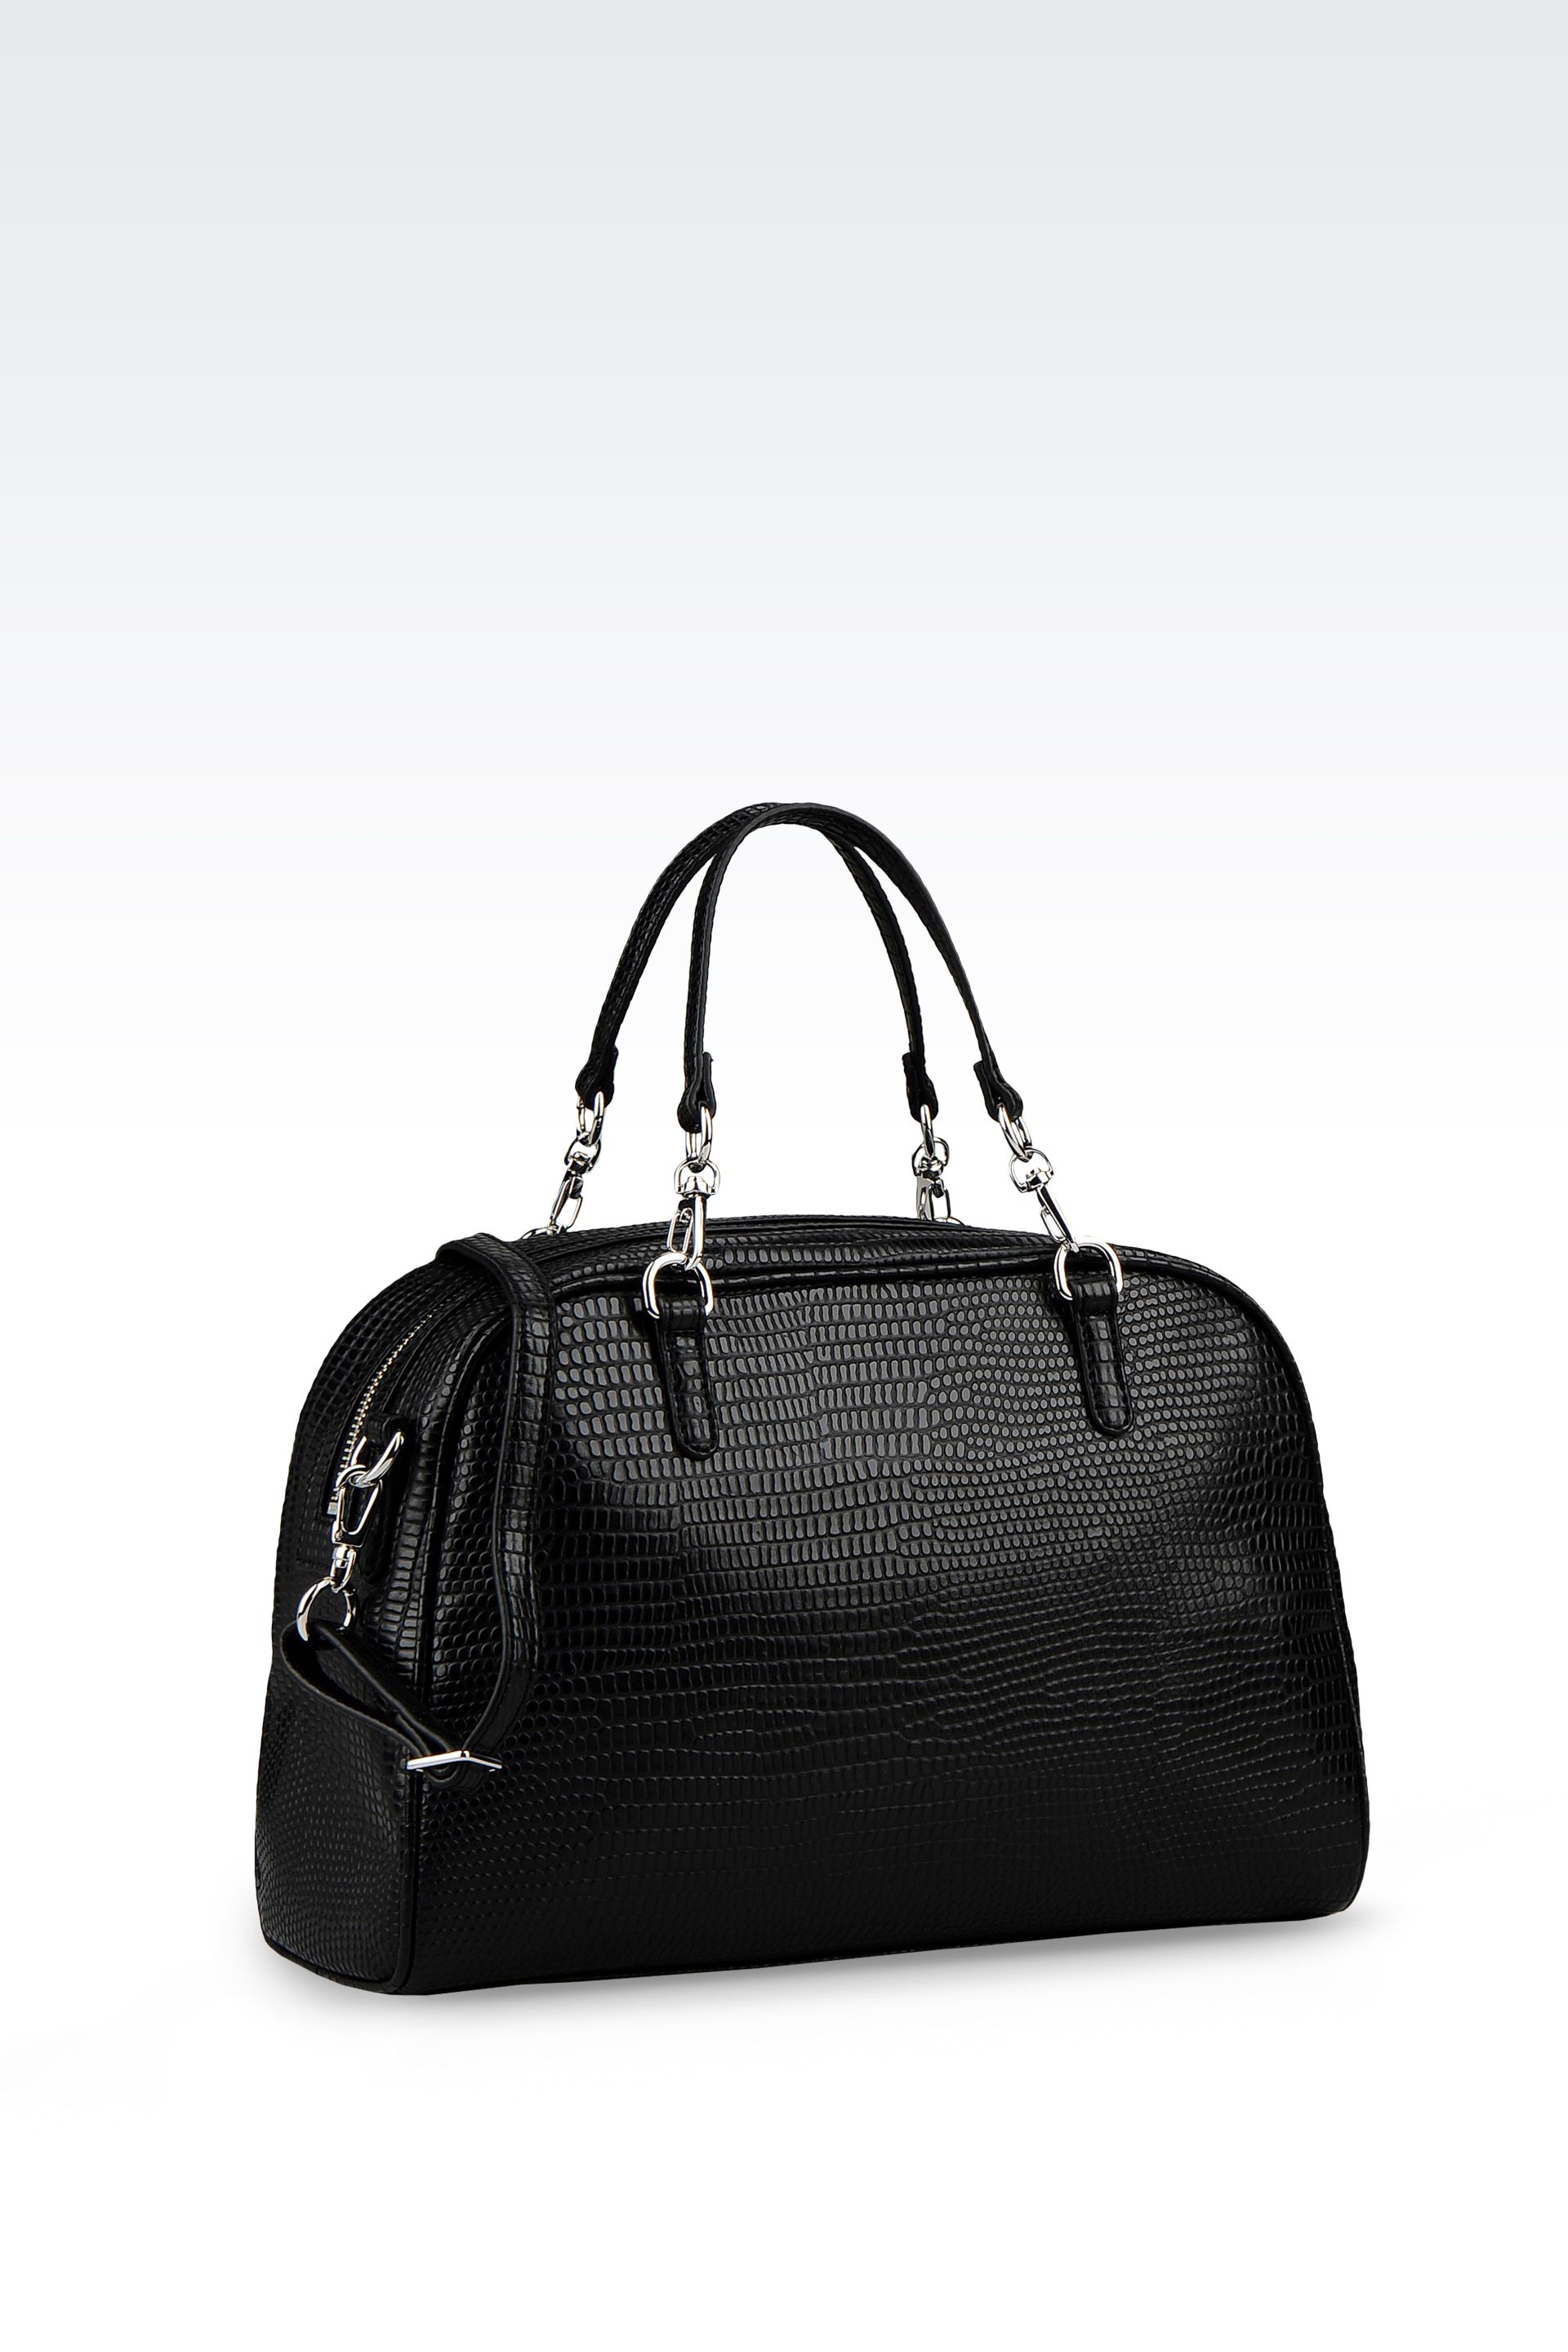 Armani Jeans Bowling Bag in Printed Faux Leather with Jewel Detail ... 8022a282893b6